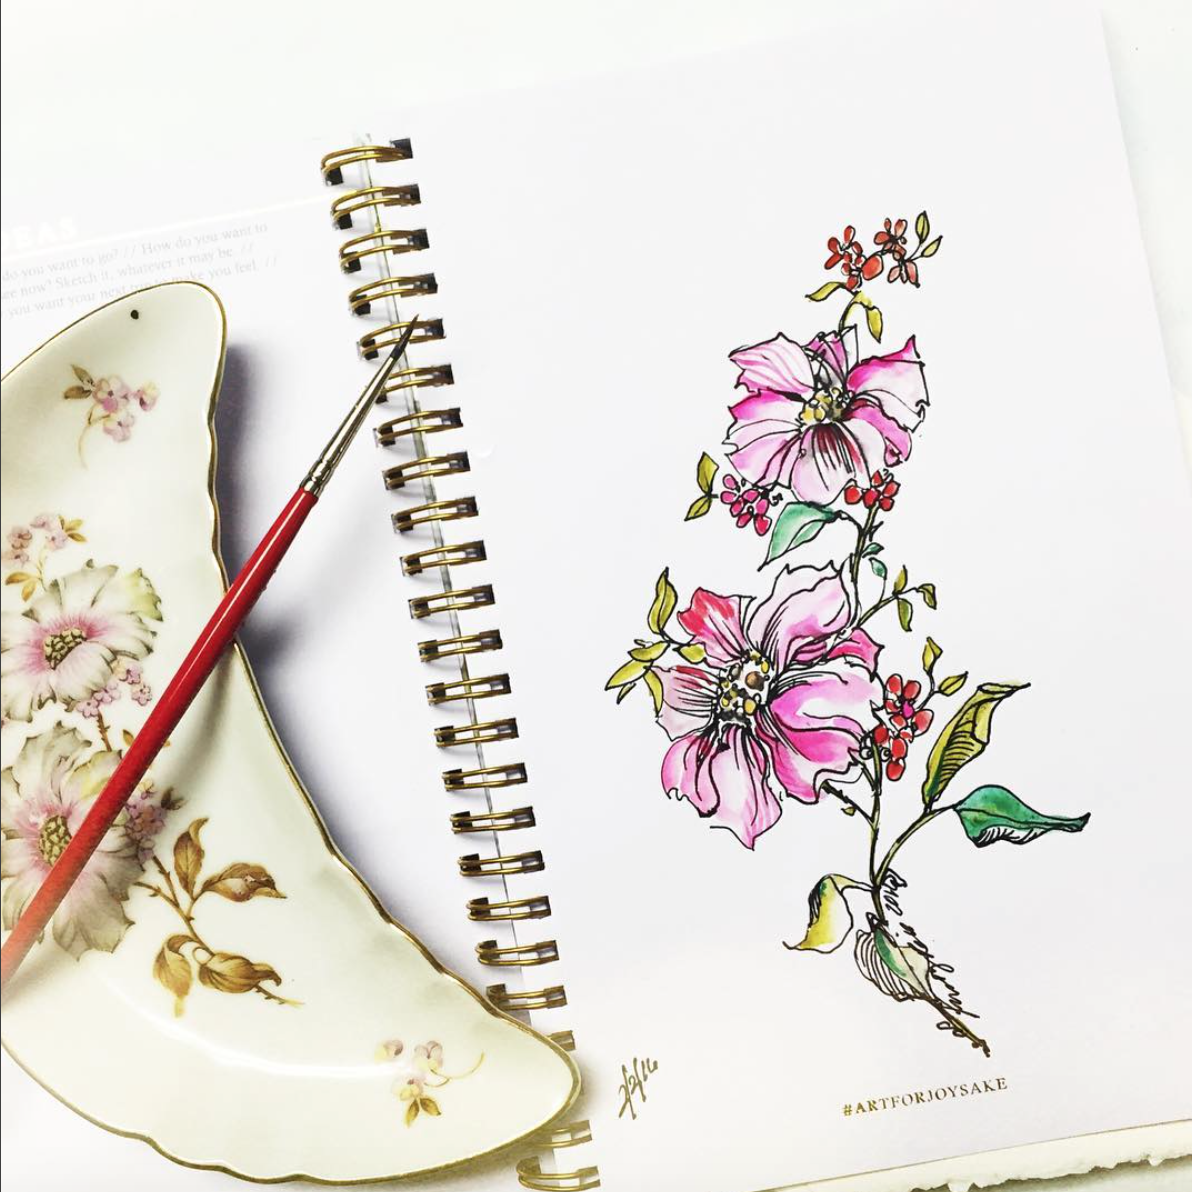 Kristy draws inspiration from antique china and floral patterns